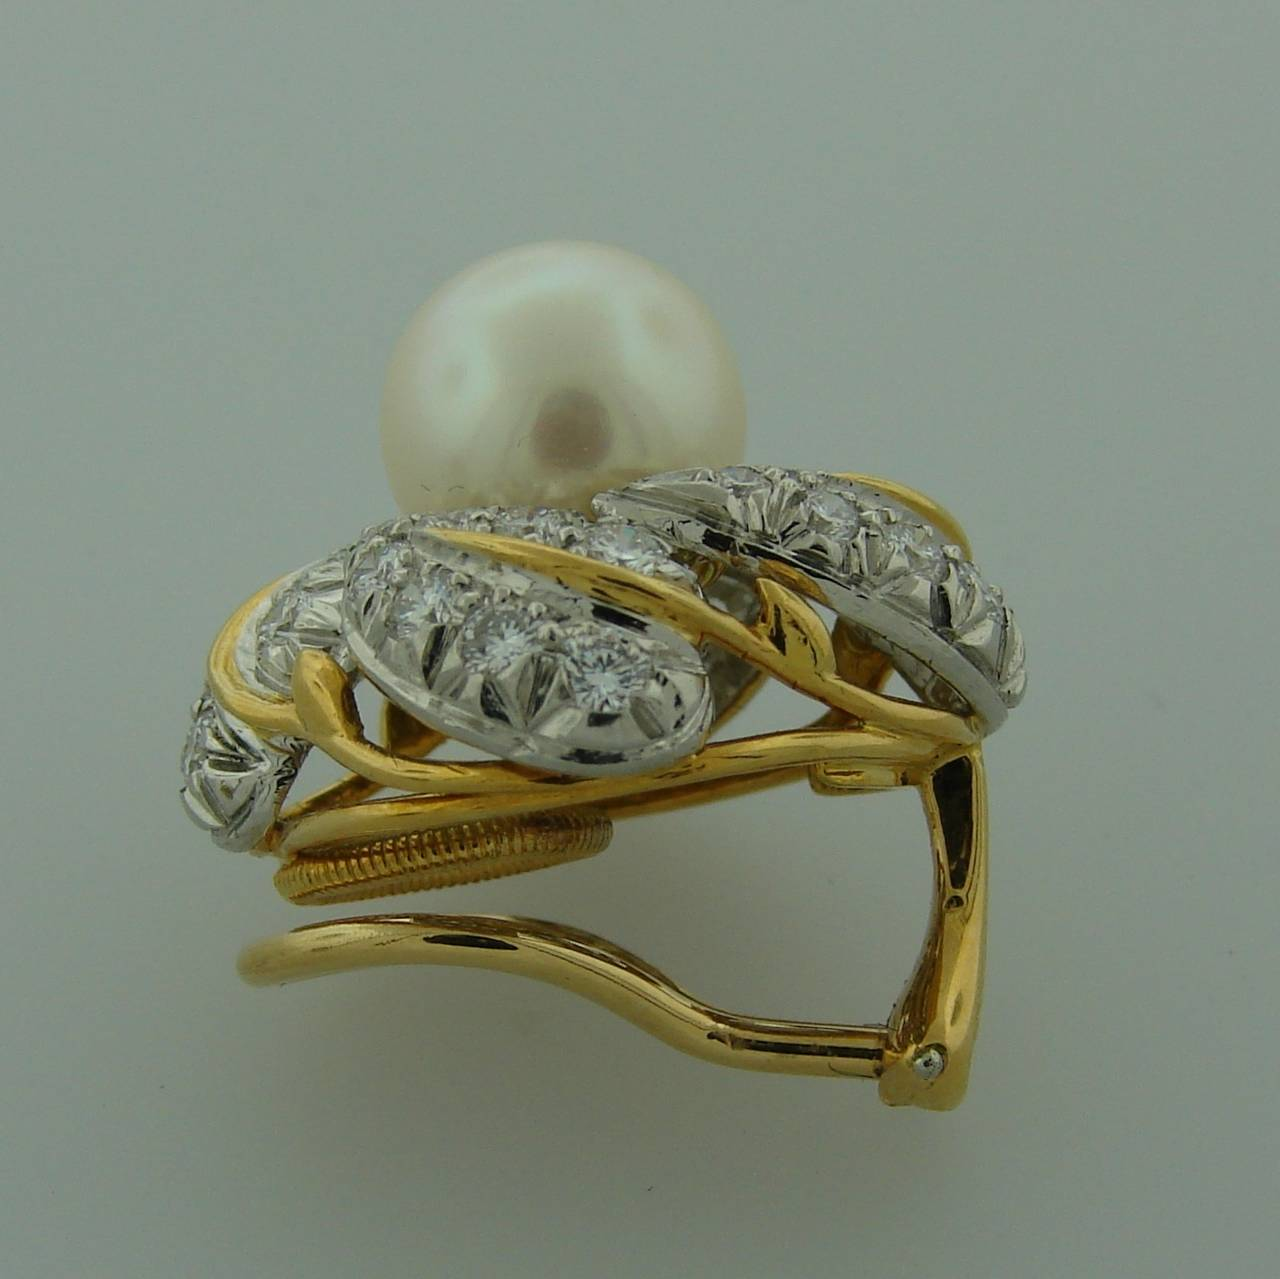 1970s Tiffany & Co. Schlumberger Pearl Diamond Gold Earrings For Sale 3